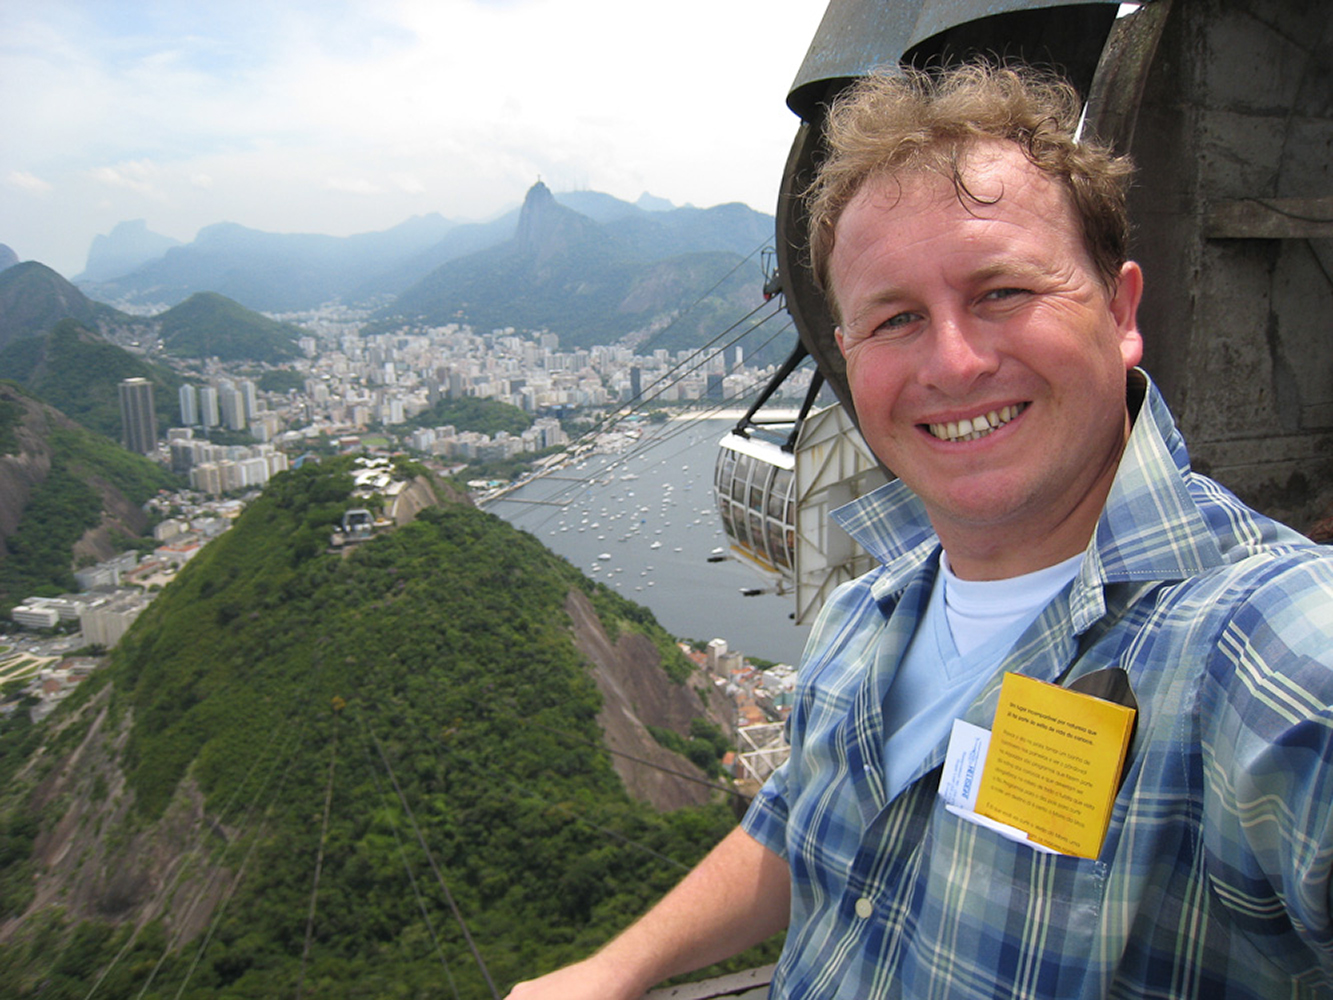 Rio, Brazil. Sugar loaf mountain looking out towards Corcovado and the statue of Christ